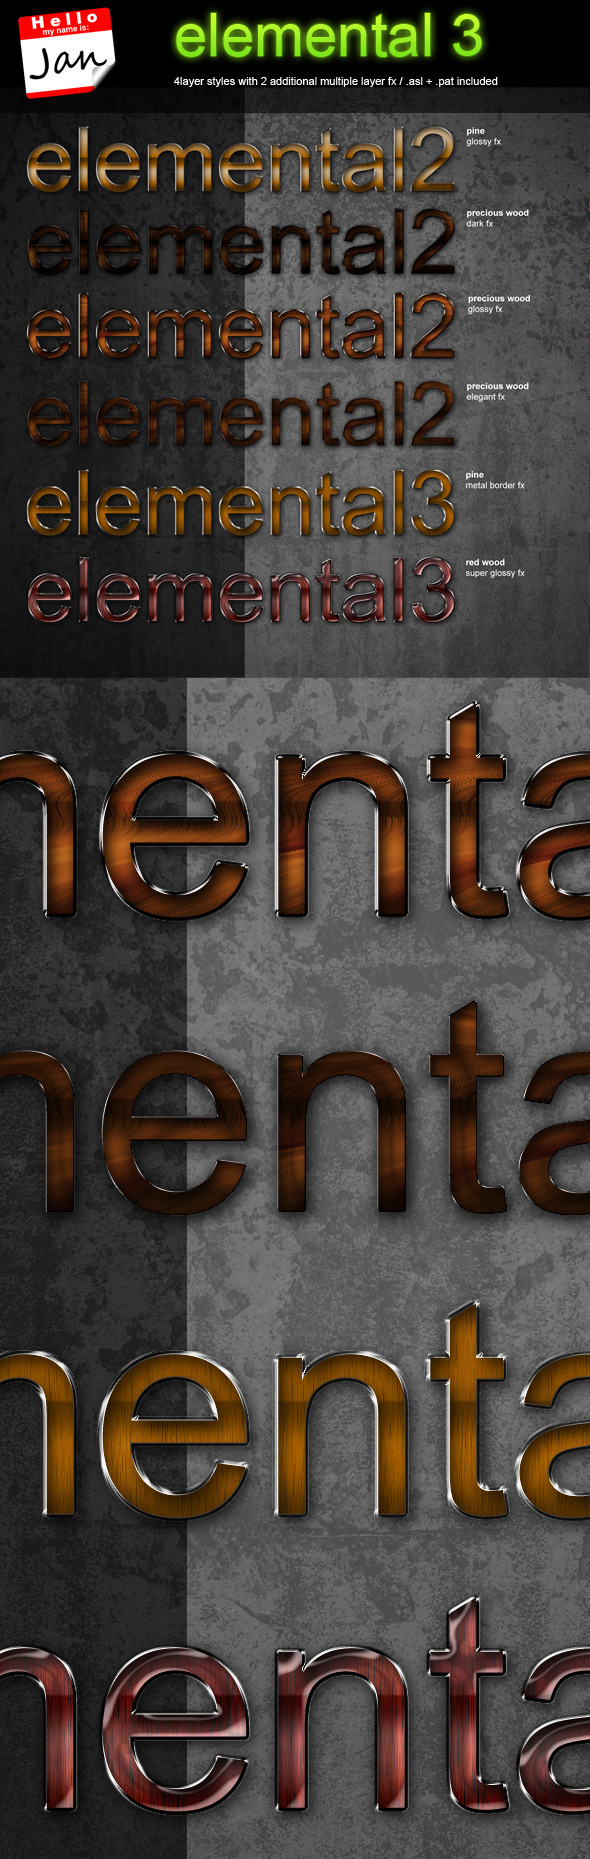 elemental 3 - professional styling package - Text Effects Styles